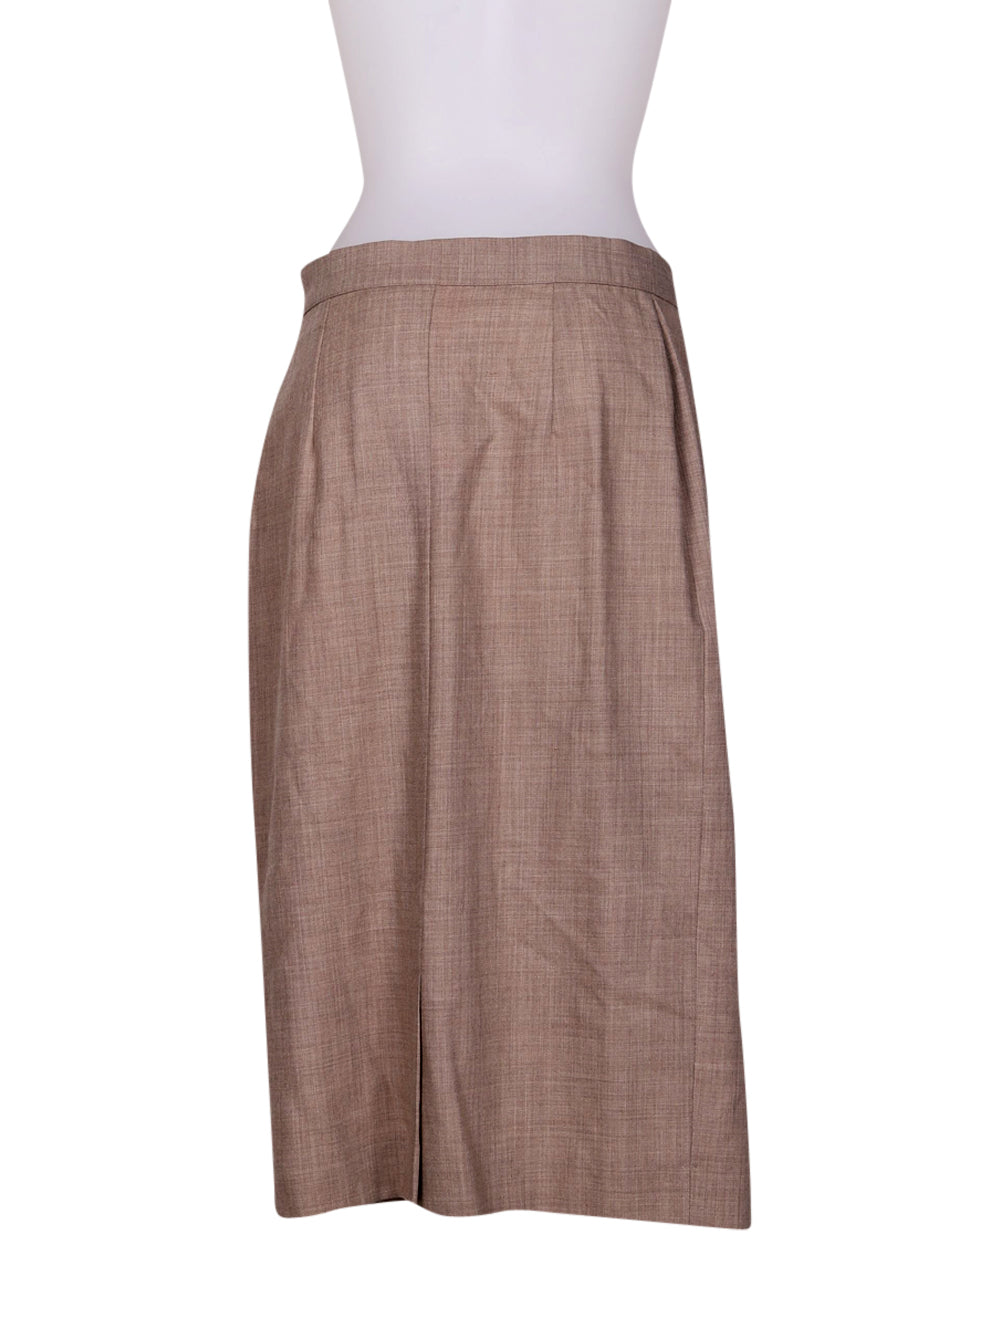 Back photo of Preloved scapa of scotland Beige Woman's skirt - size 8/S